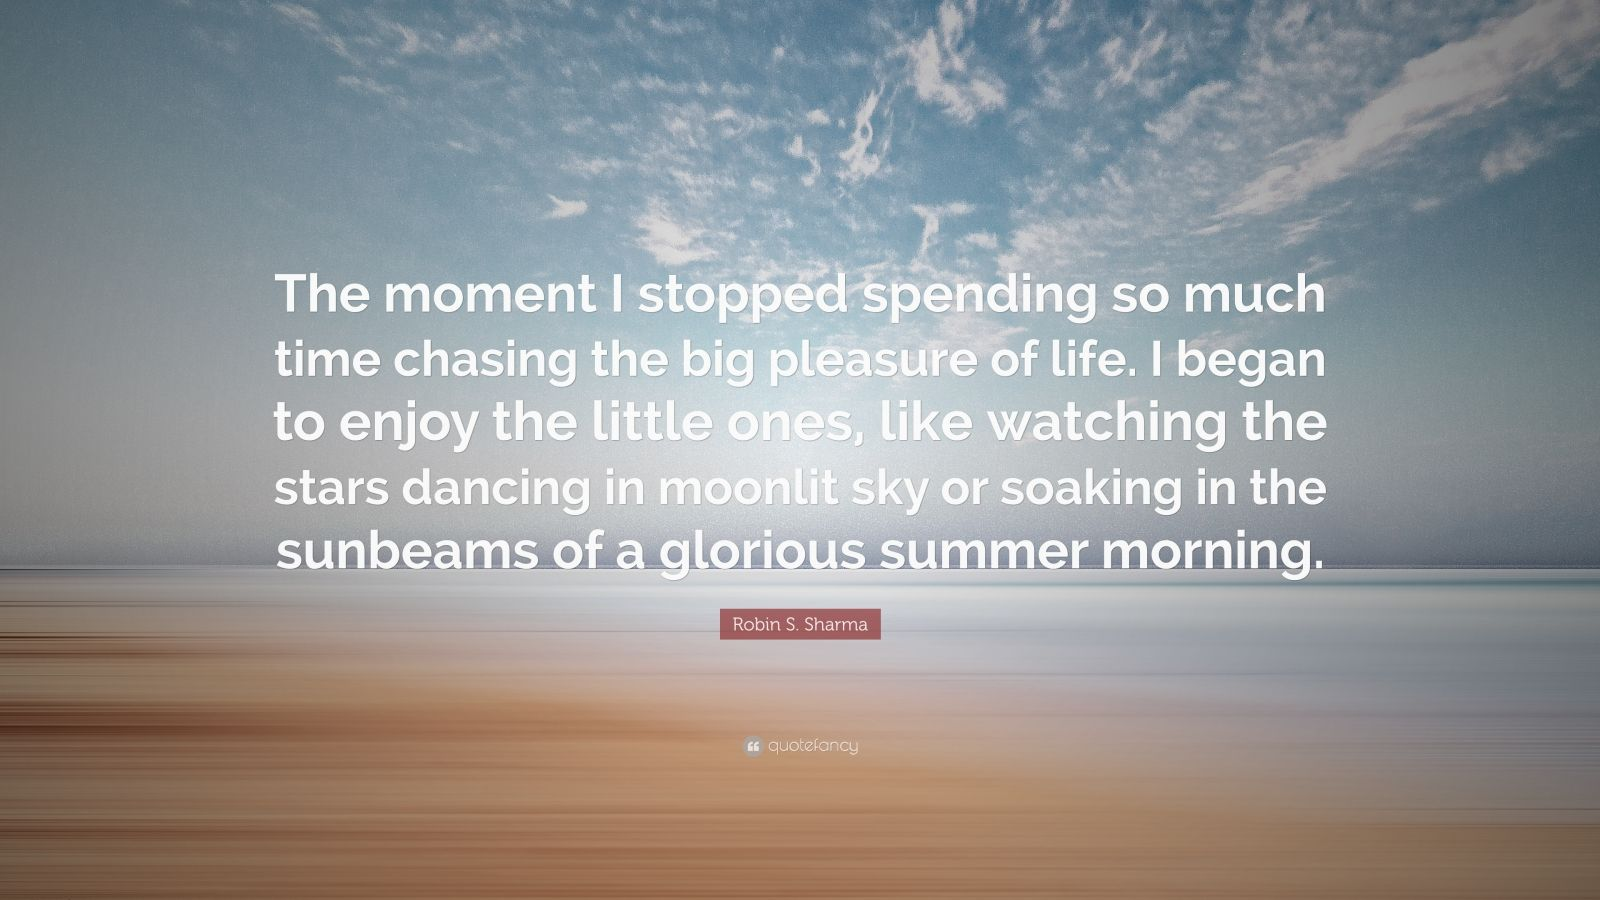 """Robin S. Sharma Quote: """"The moment I stopped spending so much time chasing the big pleasure of life. I began to enjoy the little ones, like watching the stars dancing in moonlit sky or soaking in the sunbeams of a glorious summer morning."""""""